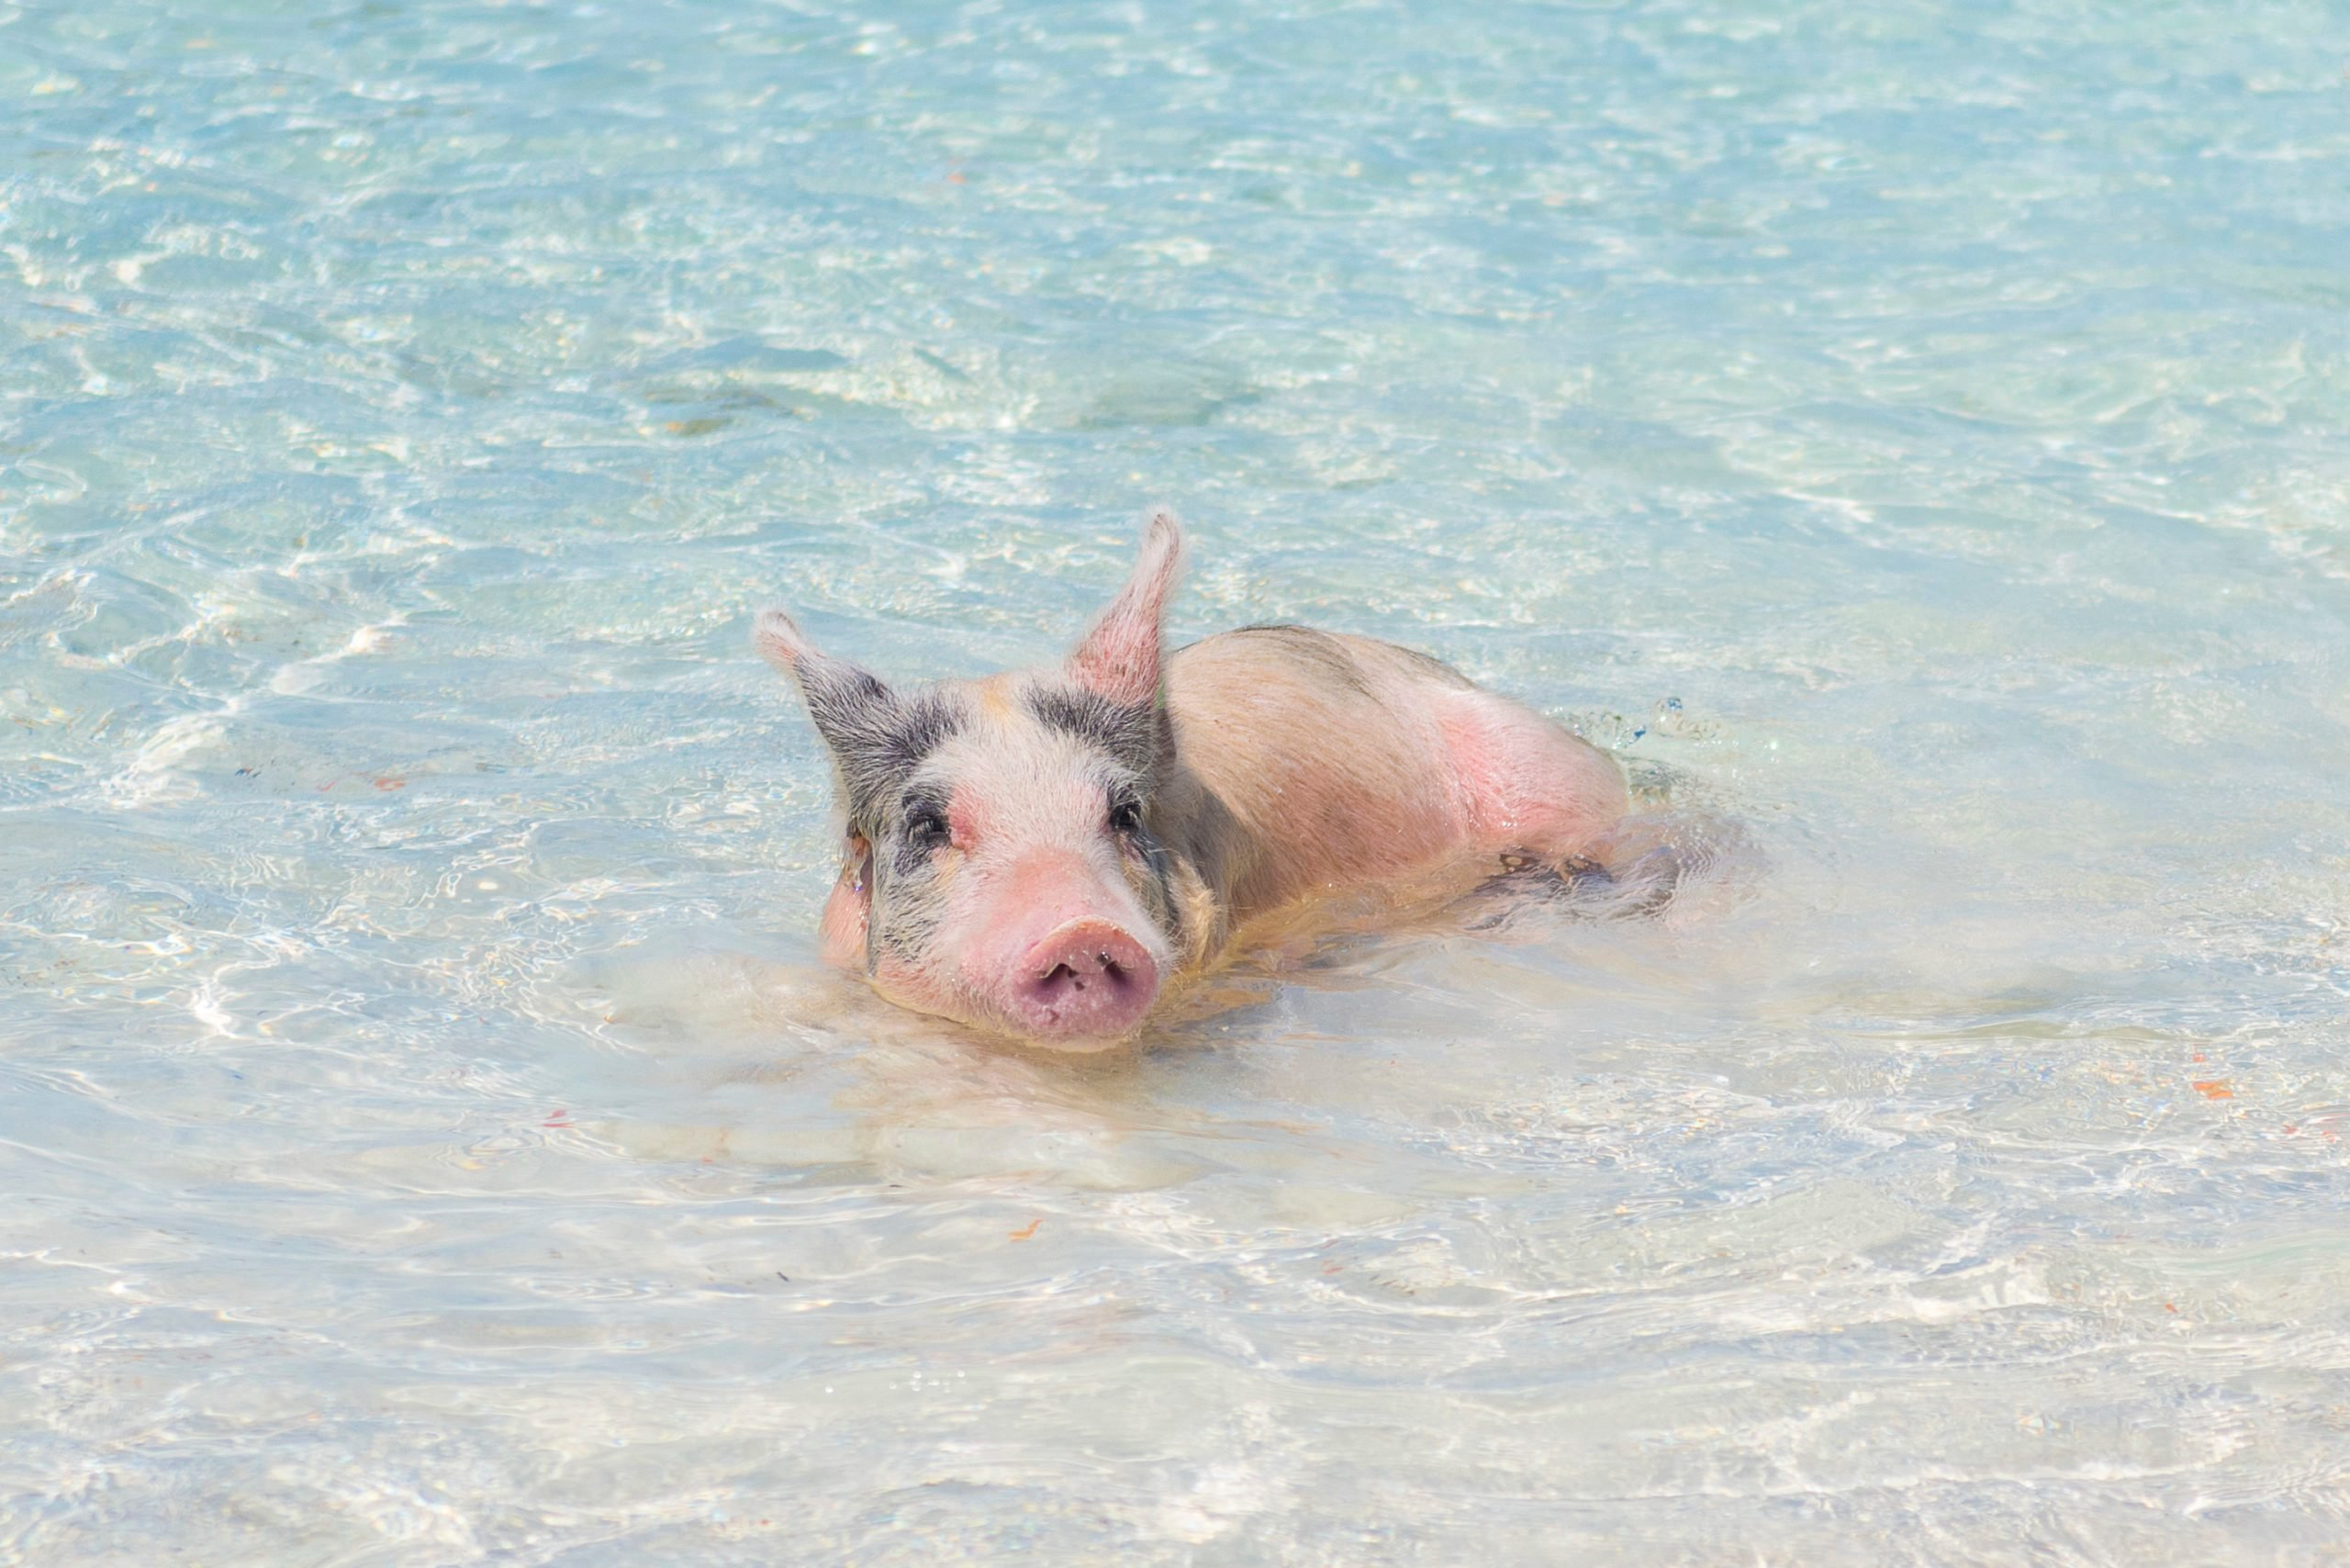 Wild Pig Sitting in Water at Pig Beach in the Bahamas